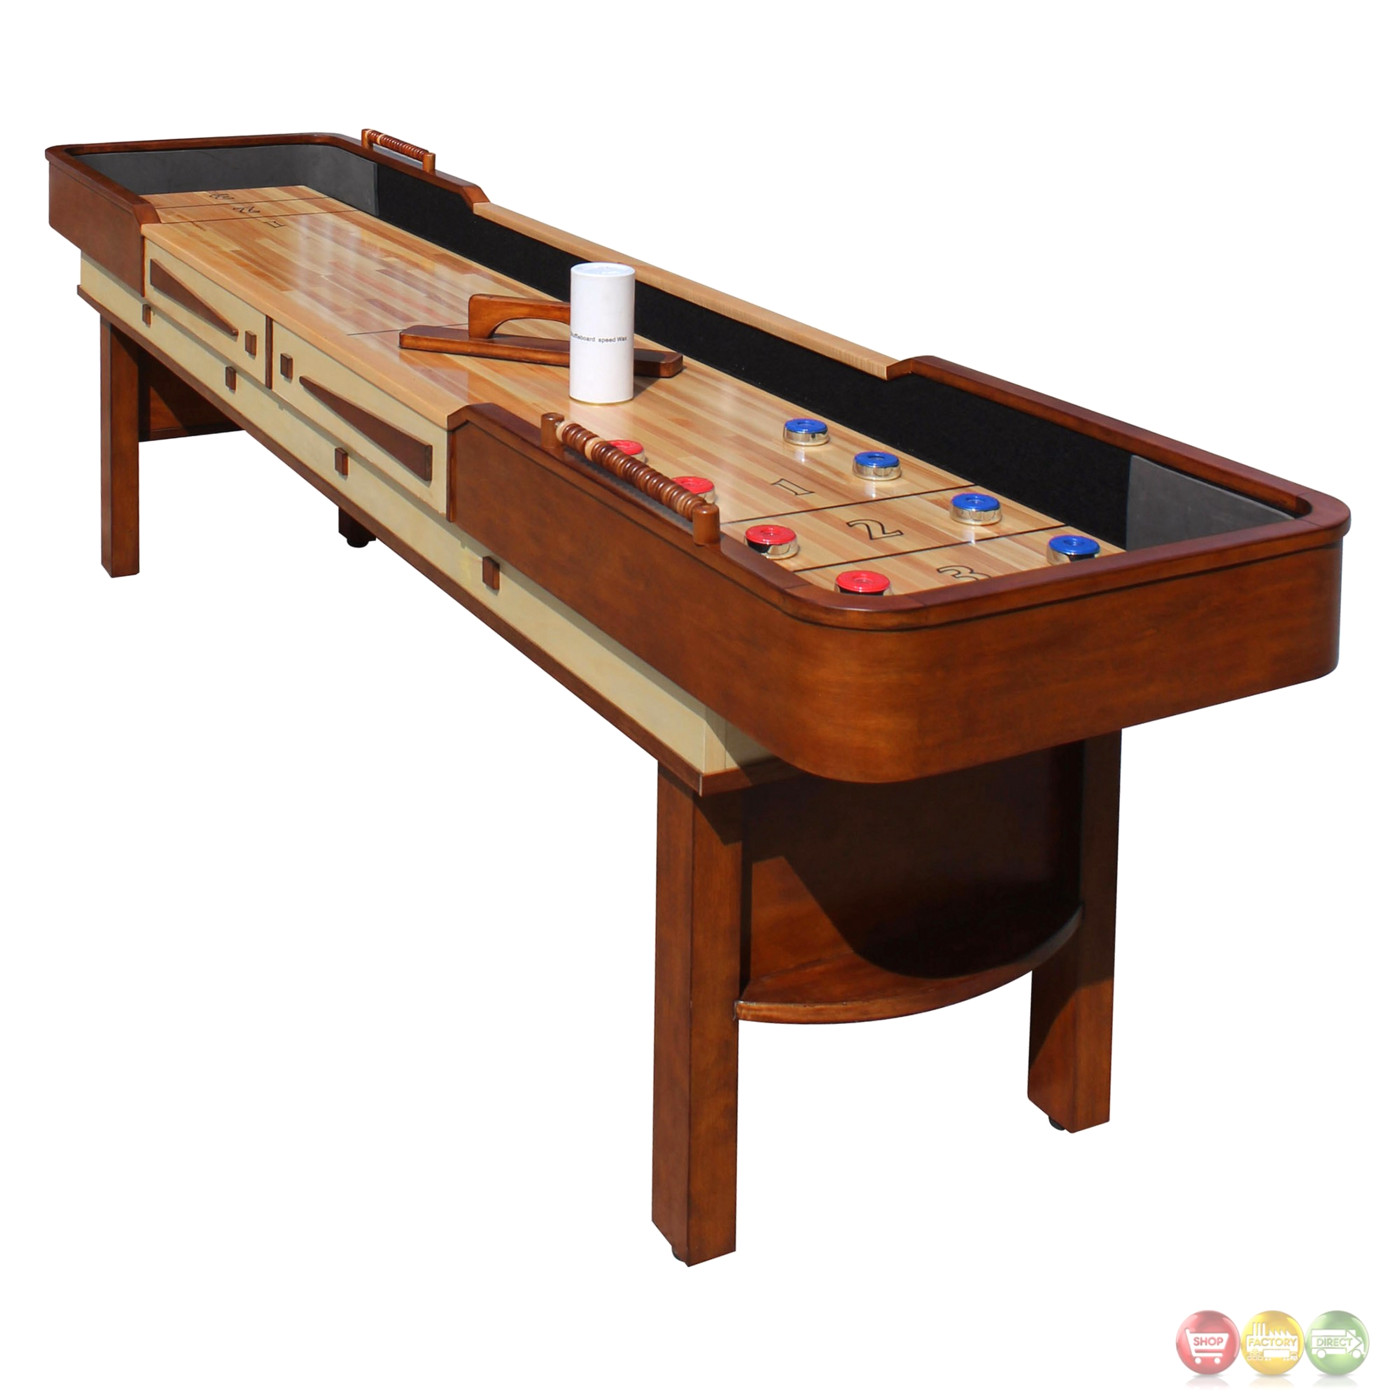 Discount Shuffleboard Tables Merlot 9-ft Shuffleboard Table In Natural Walnut W/ Climate Adjusters